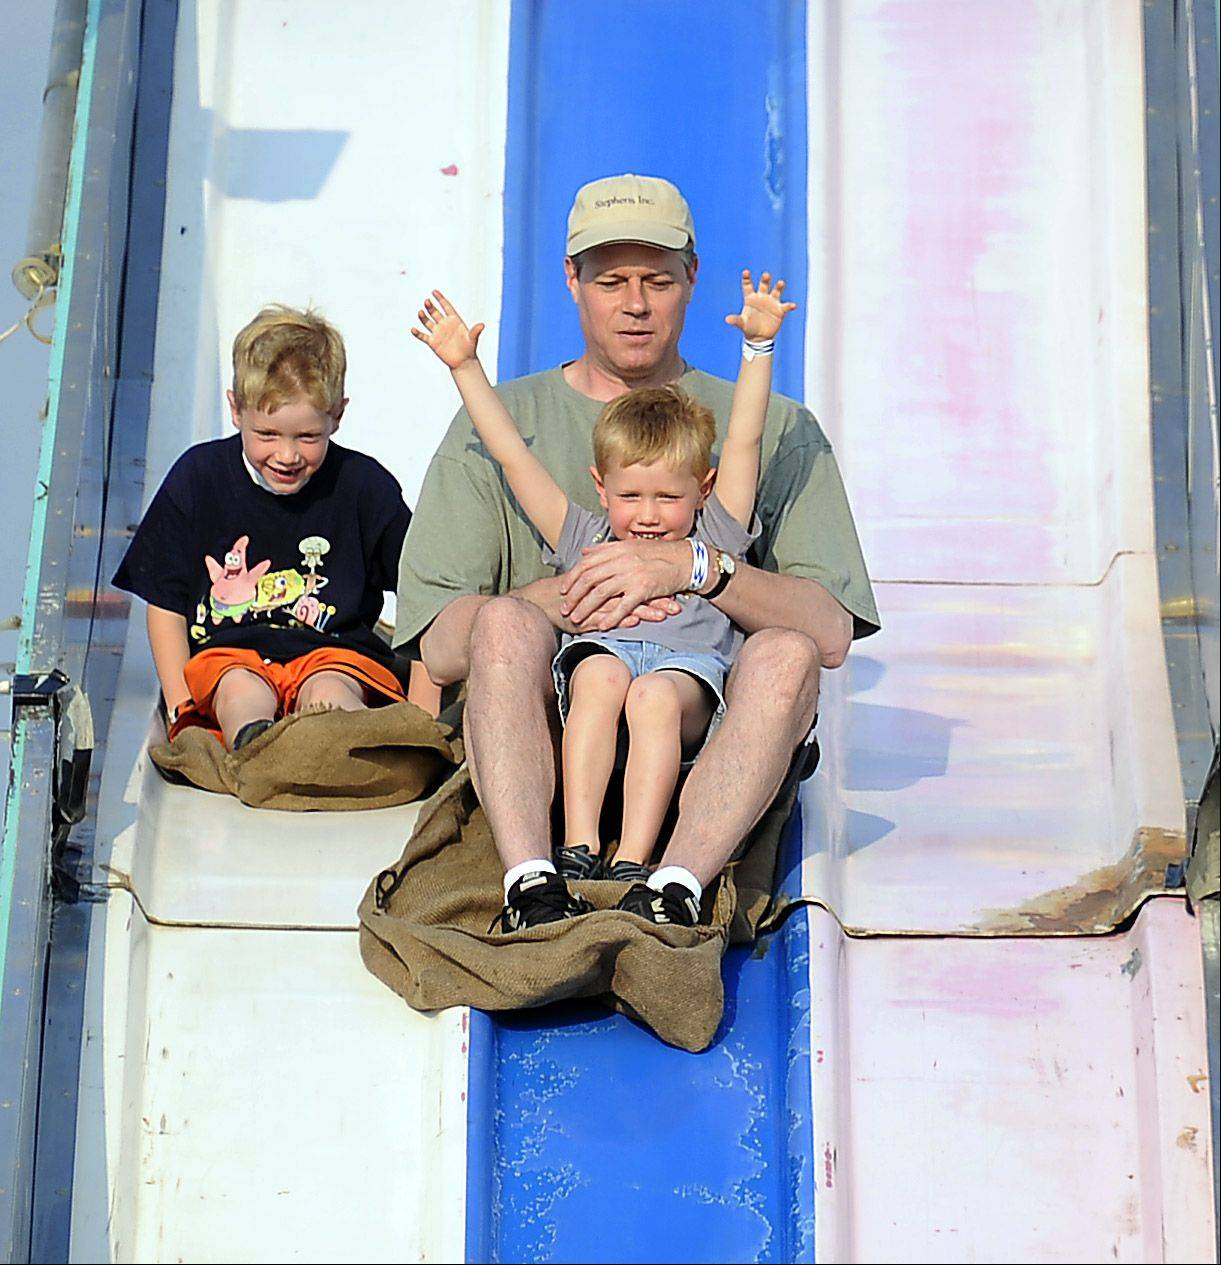 Dan VandeVelde and his sons Eric,4, and Alex,6, formerly of Hoffman Estates, hit the giant slide at the Northwest Fourth-Fest in Hoffman Estates on Friday.